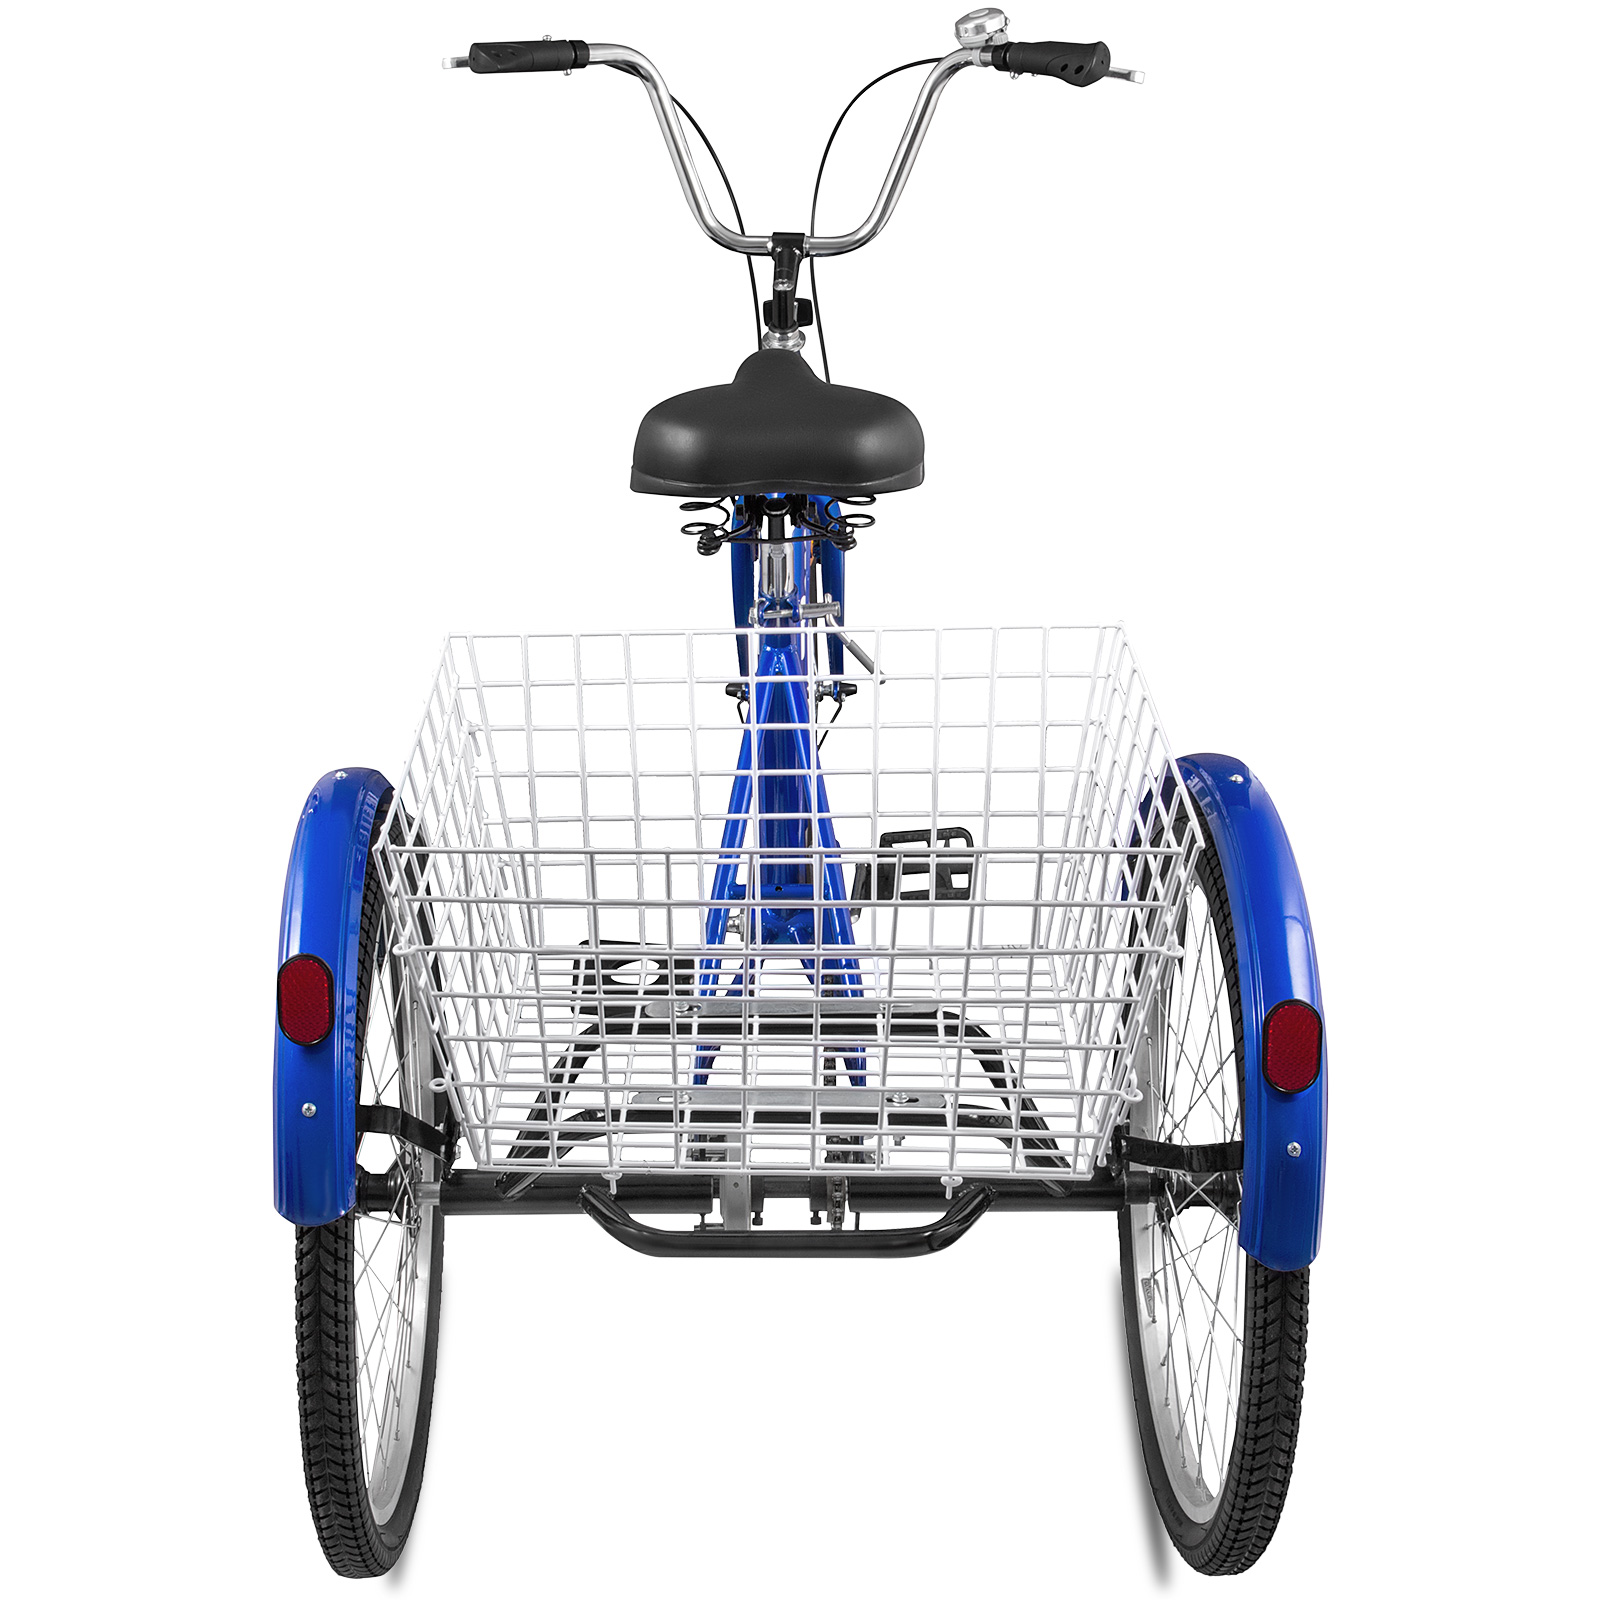 20-24-26-034-Adult-Tricycle-1-7-Speed-3-Wheel-Large-Basket-For-Shopping-Optional thumbnail 252